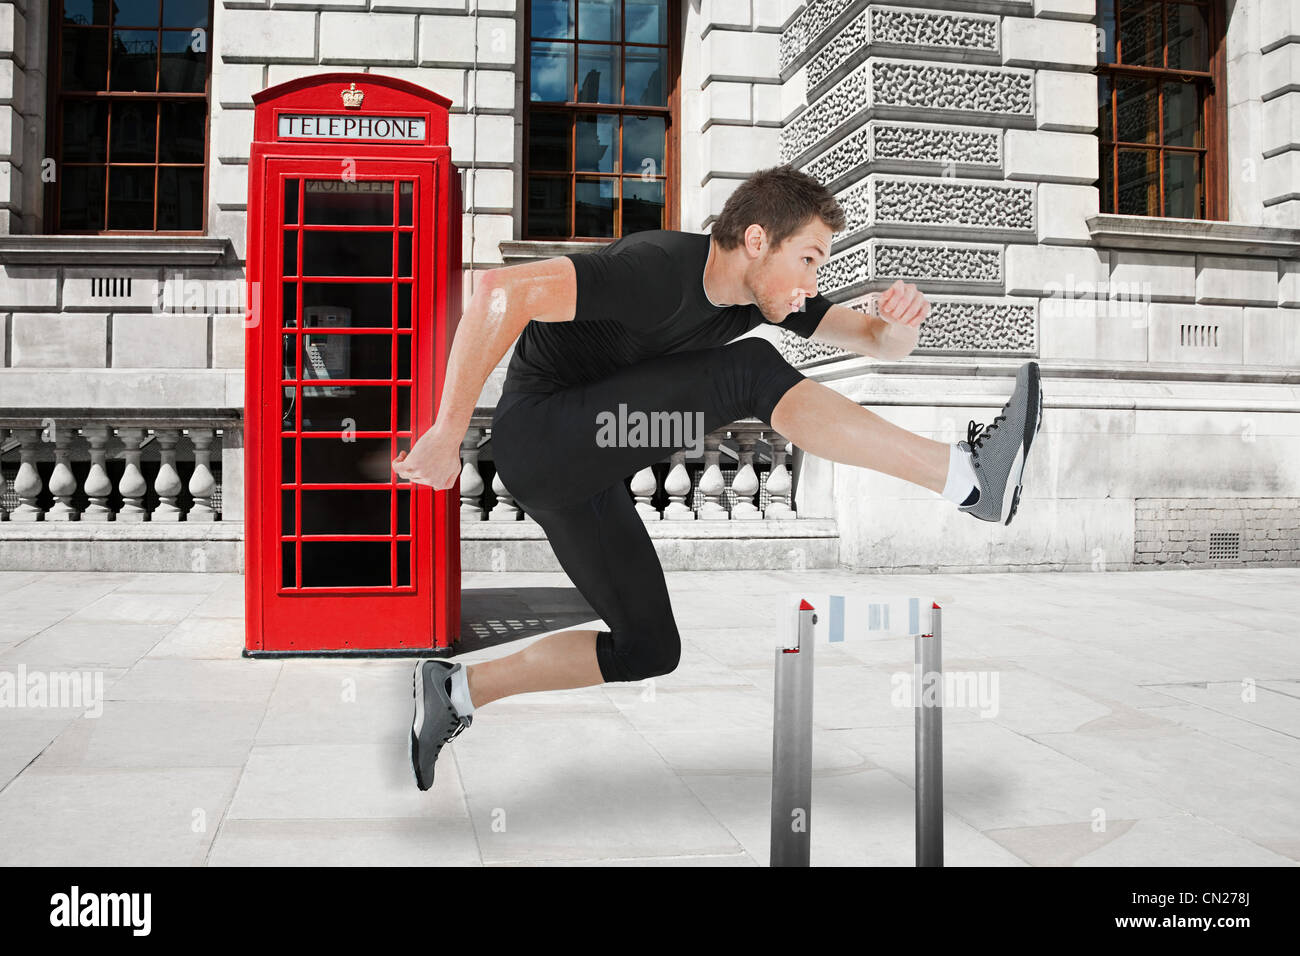 Hurdler jumping hurdle with red telephone box in background - Stock Image